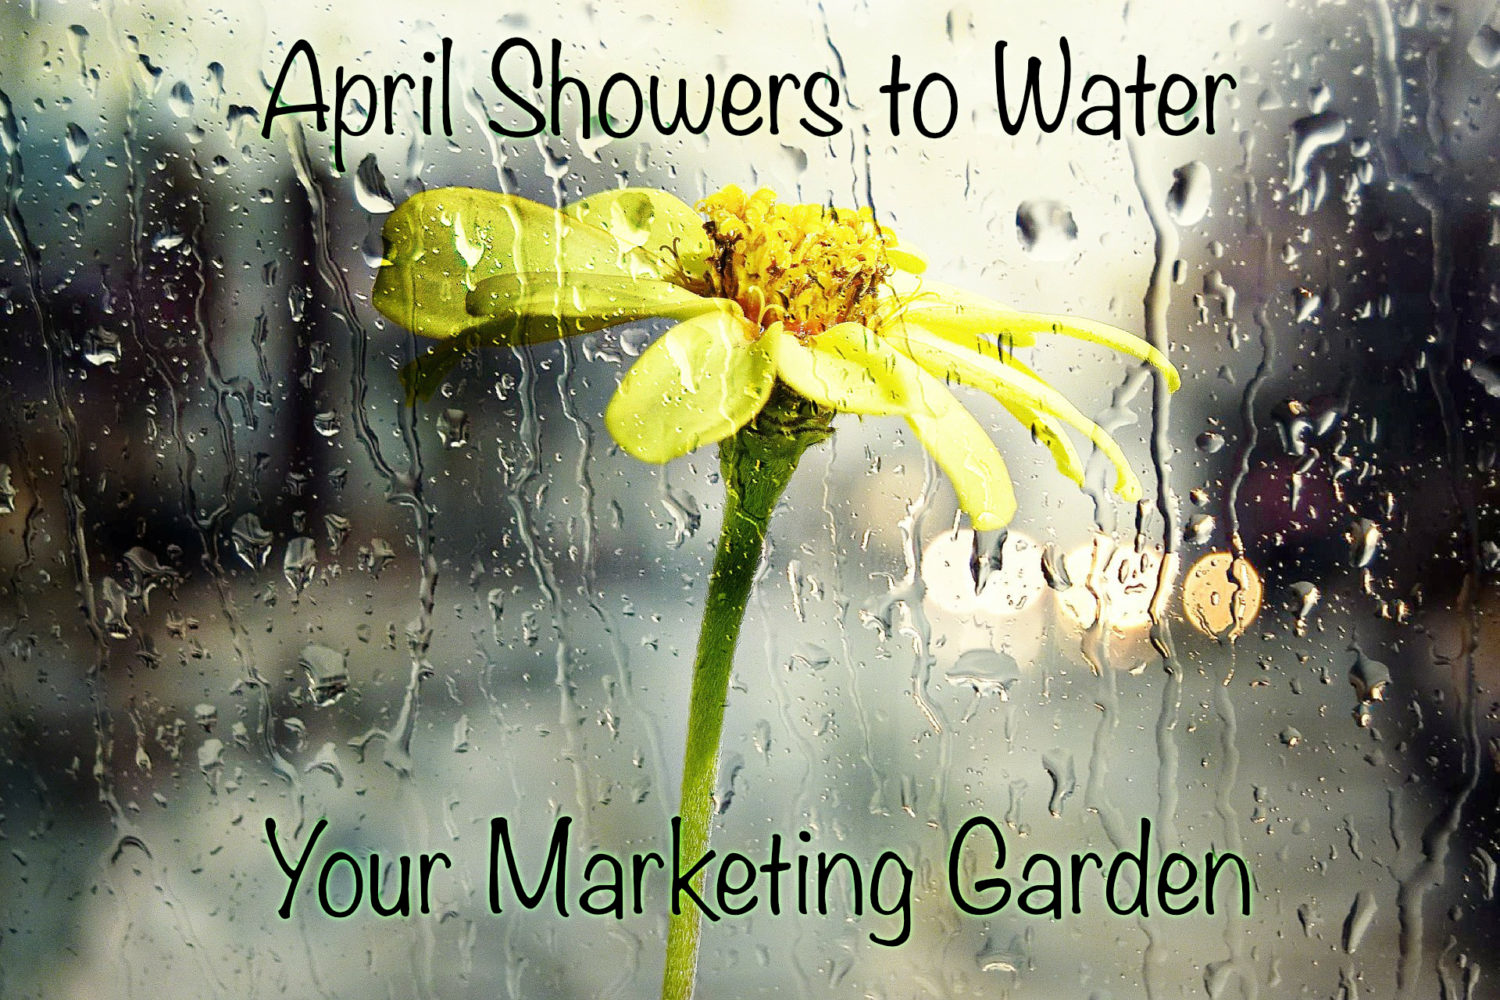 April Showers to Water Your Marketing Garden